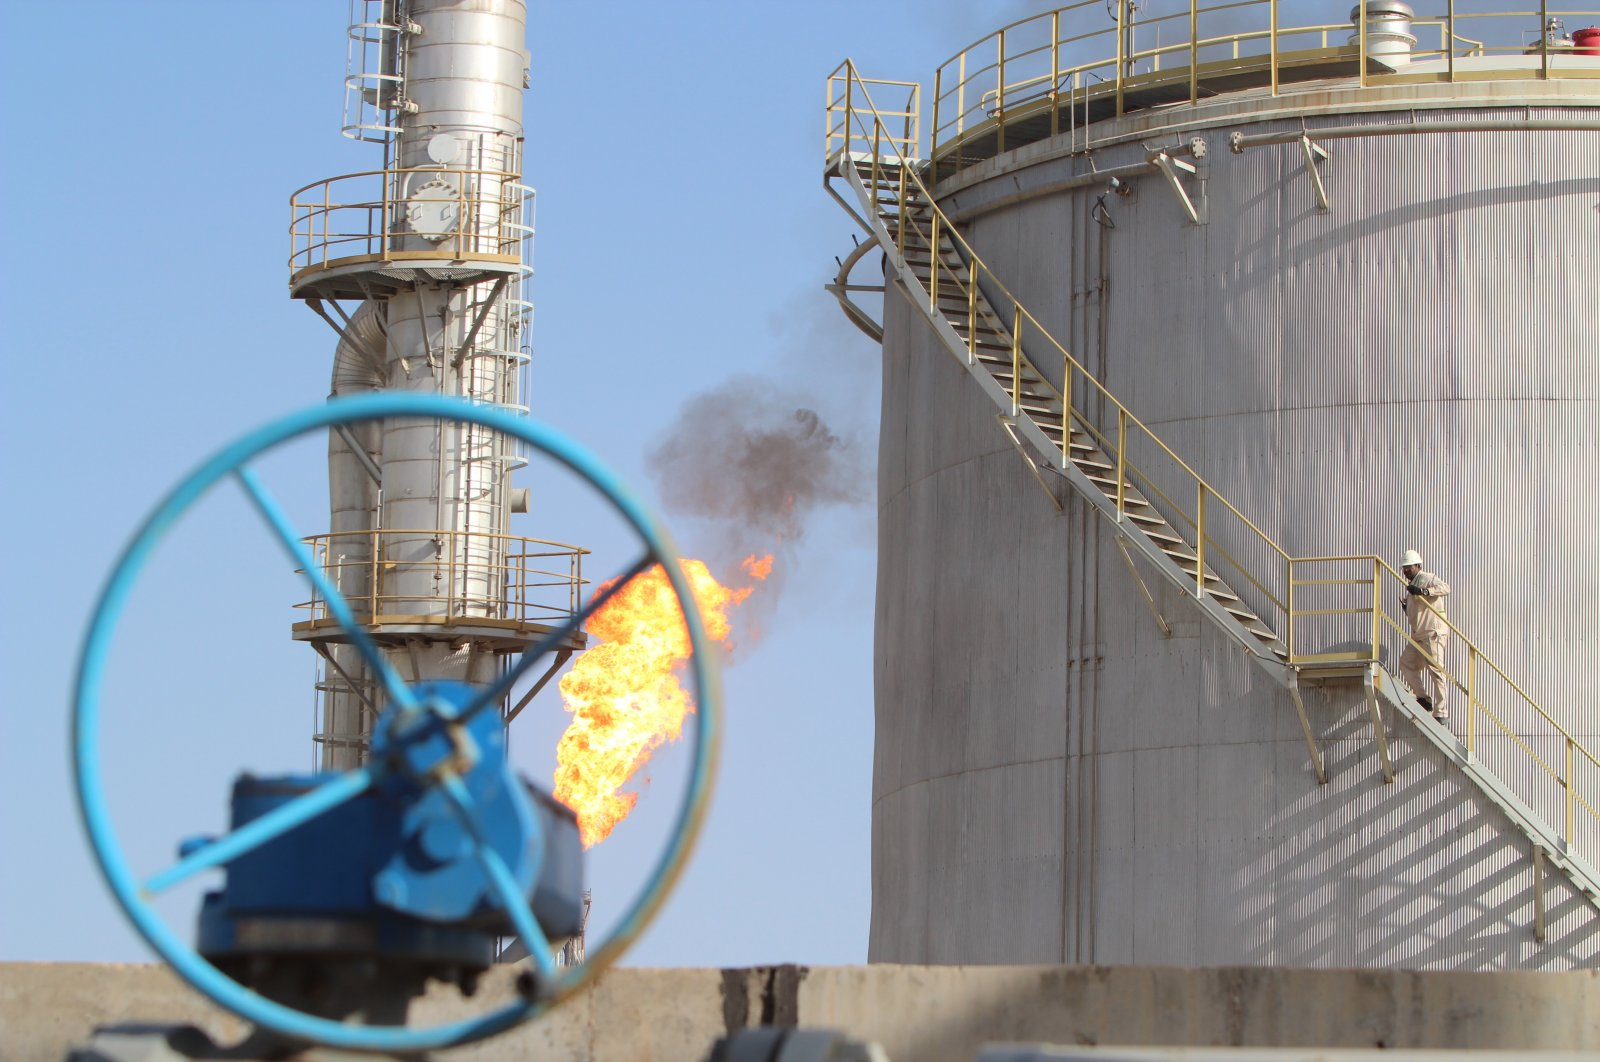 Bazerkan oil field in the city of Maysan, south of the capital Baghdad, Iraq, Jan 21, 2016. (Shutterstock Photo)